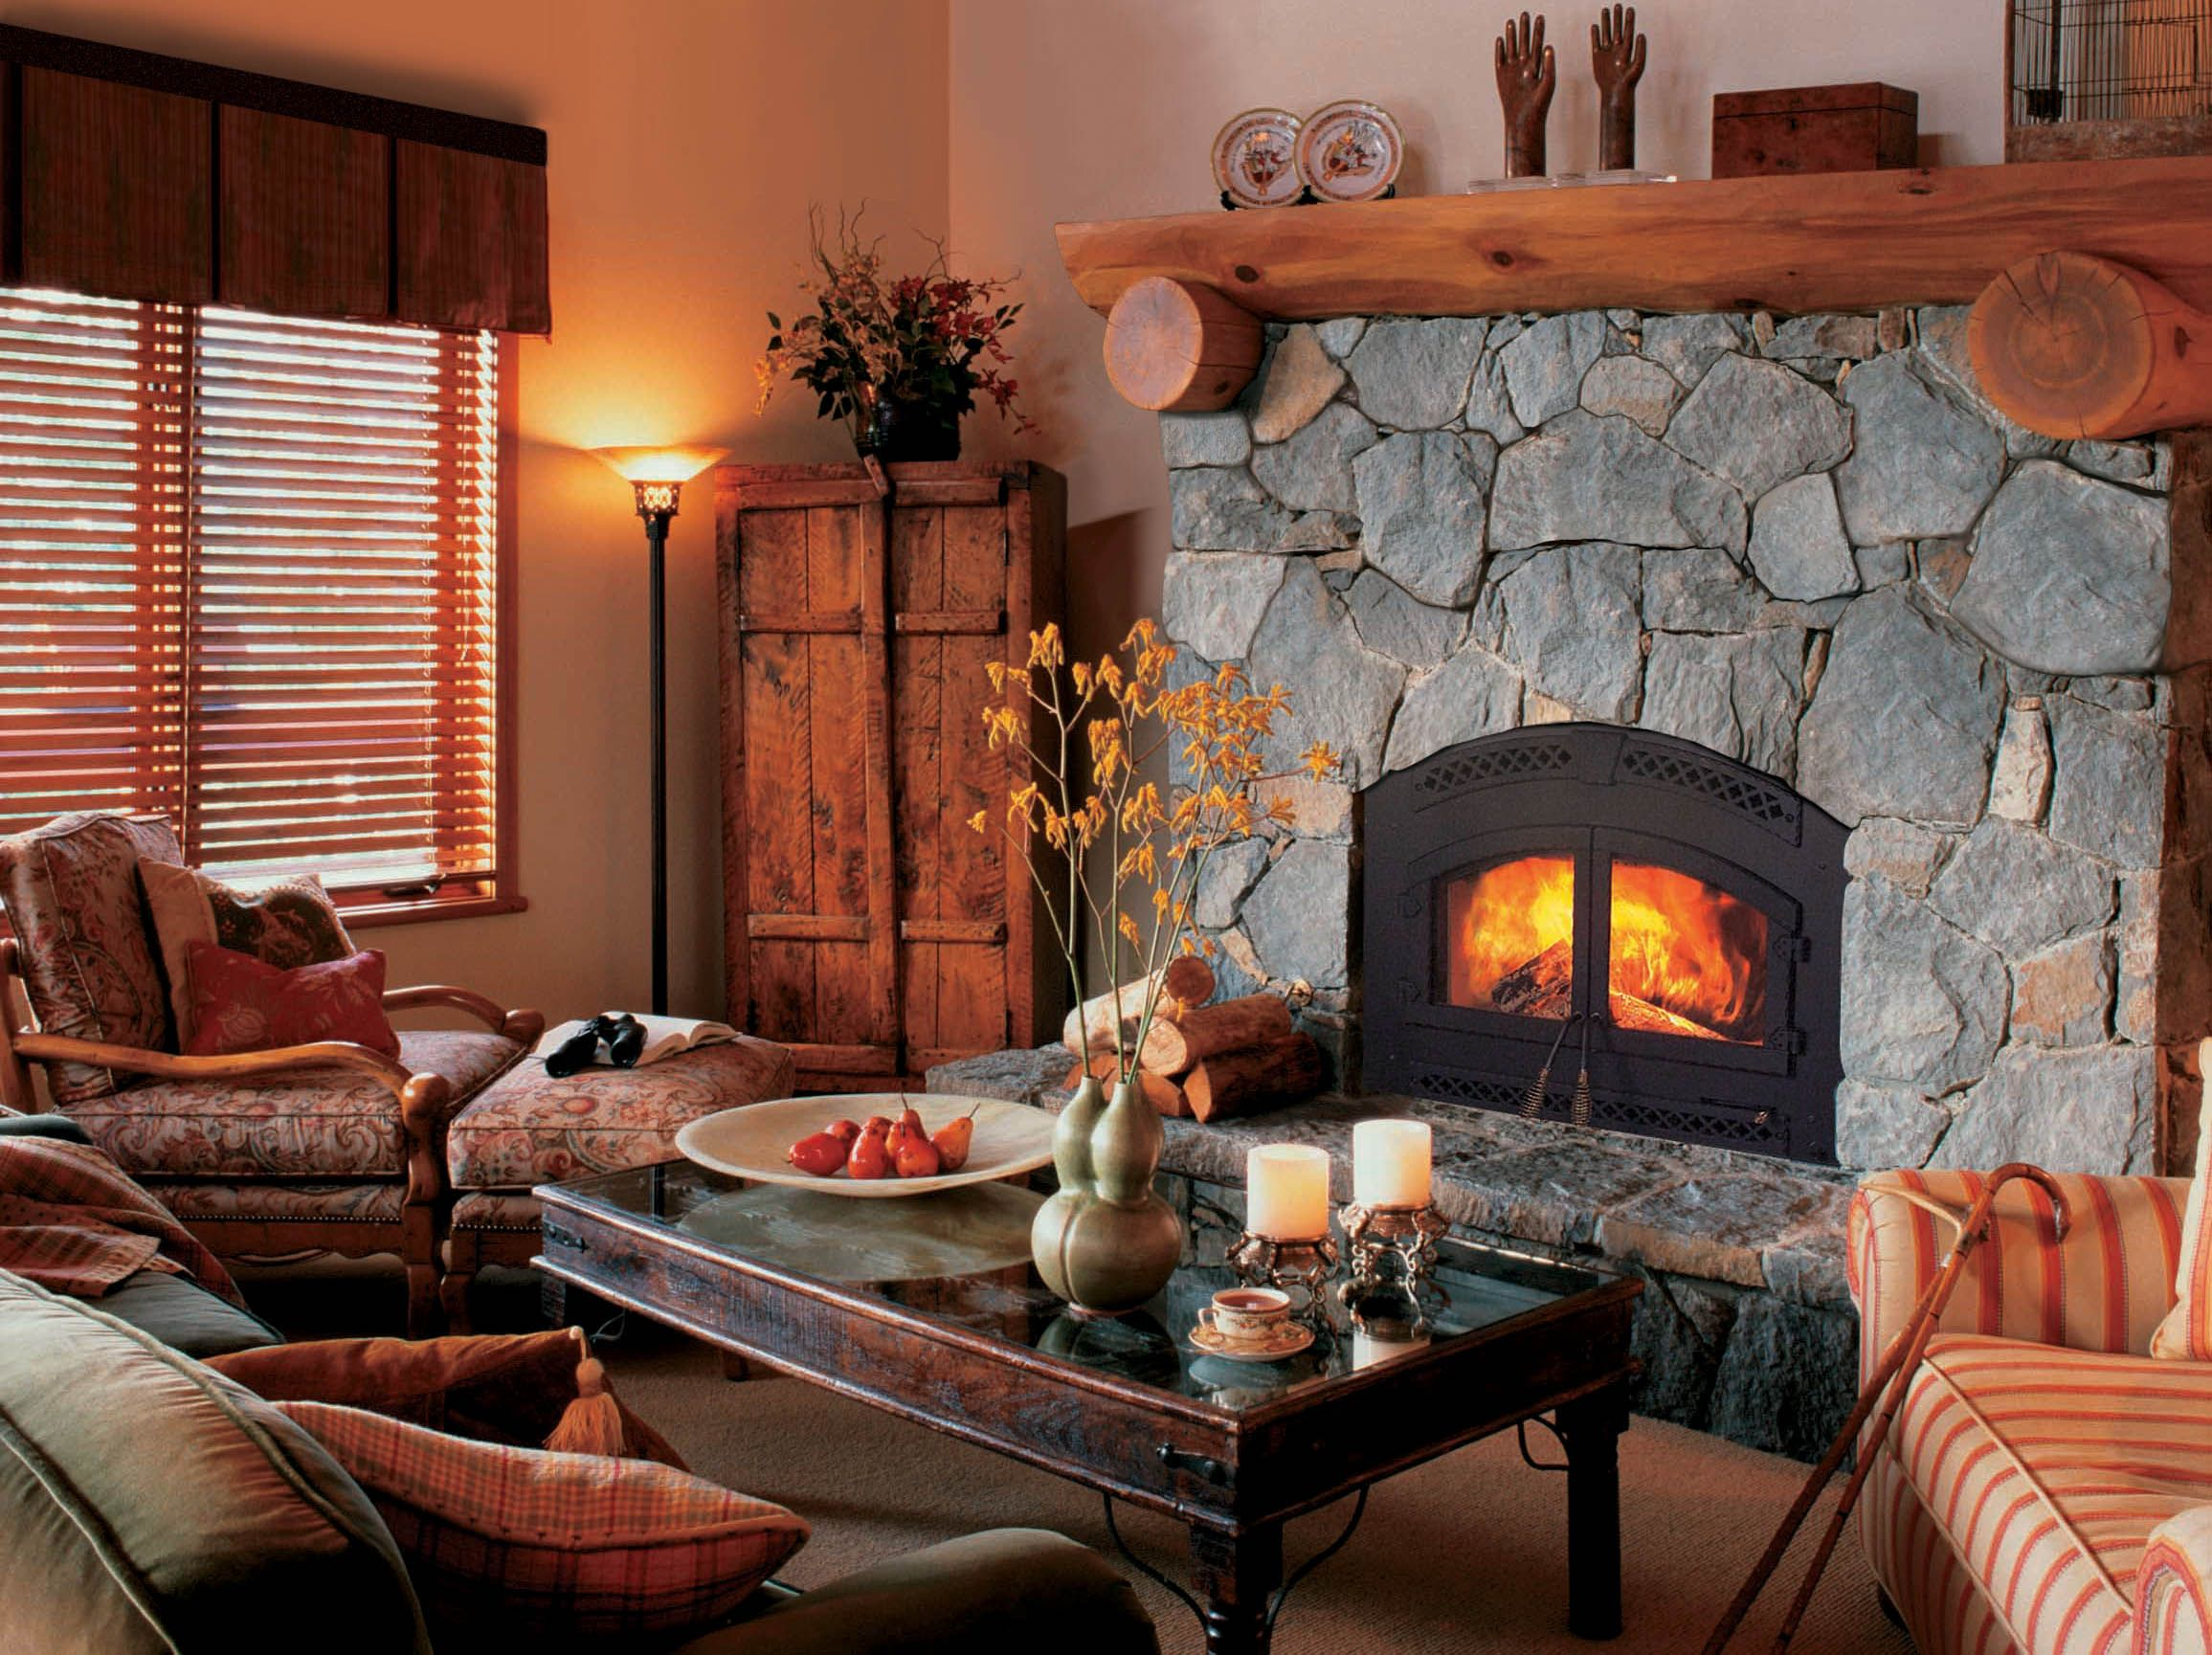 Wood Fireplace Wood Fireplace Rustic Living Room Design Rustic